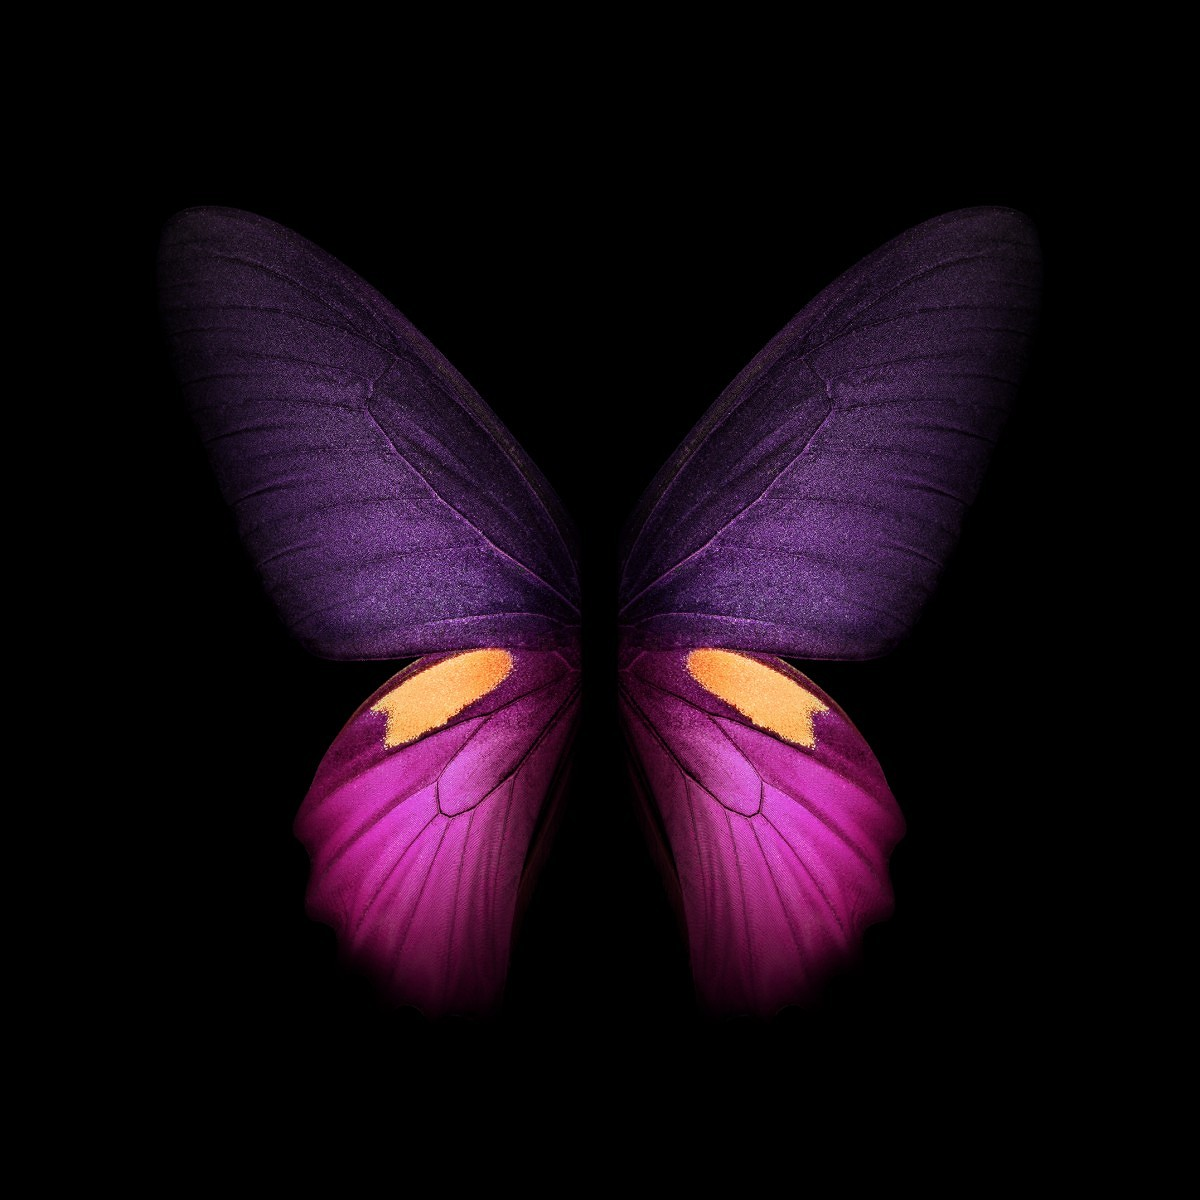 Here Are All Of The Official Wallpapers From The Samsung Galaxy Fold